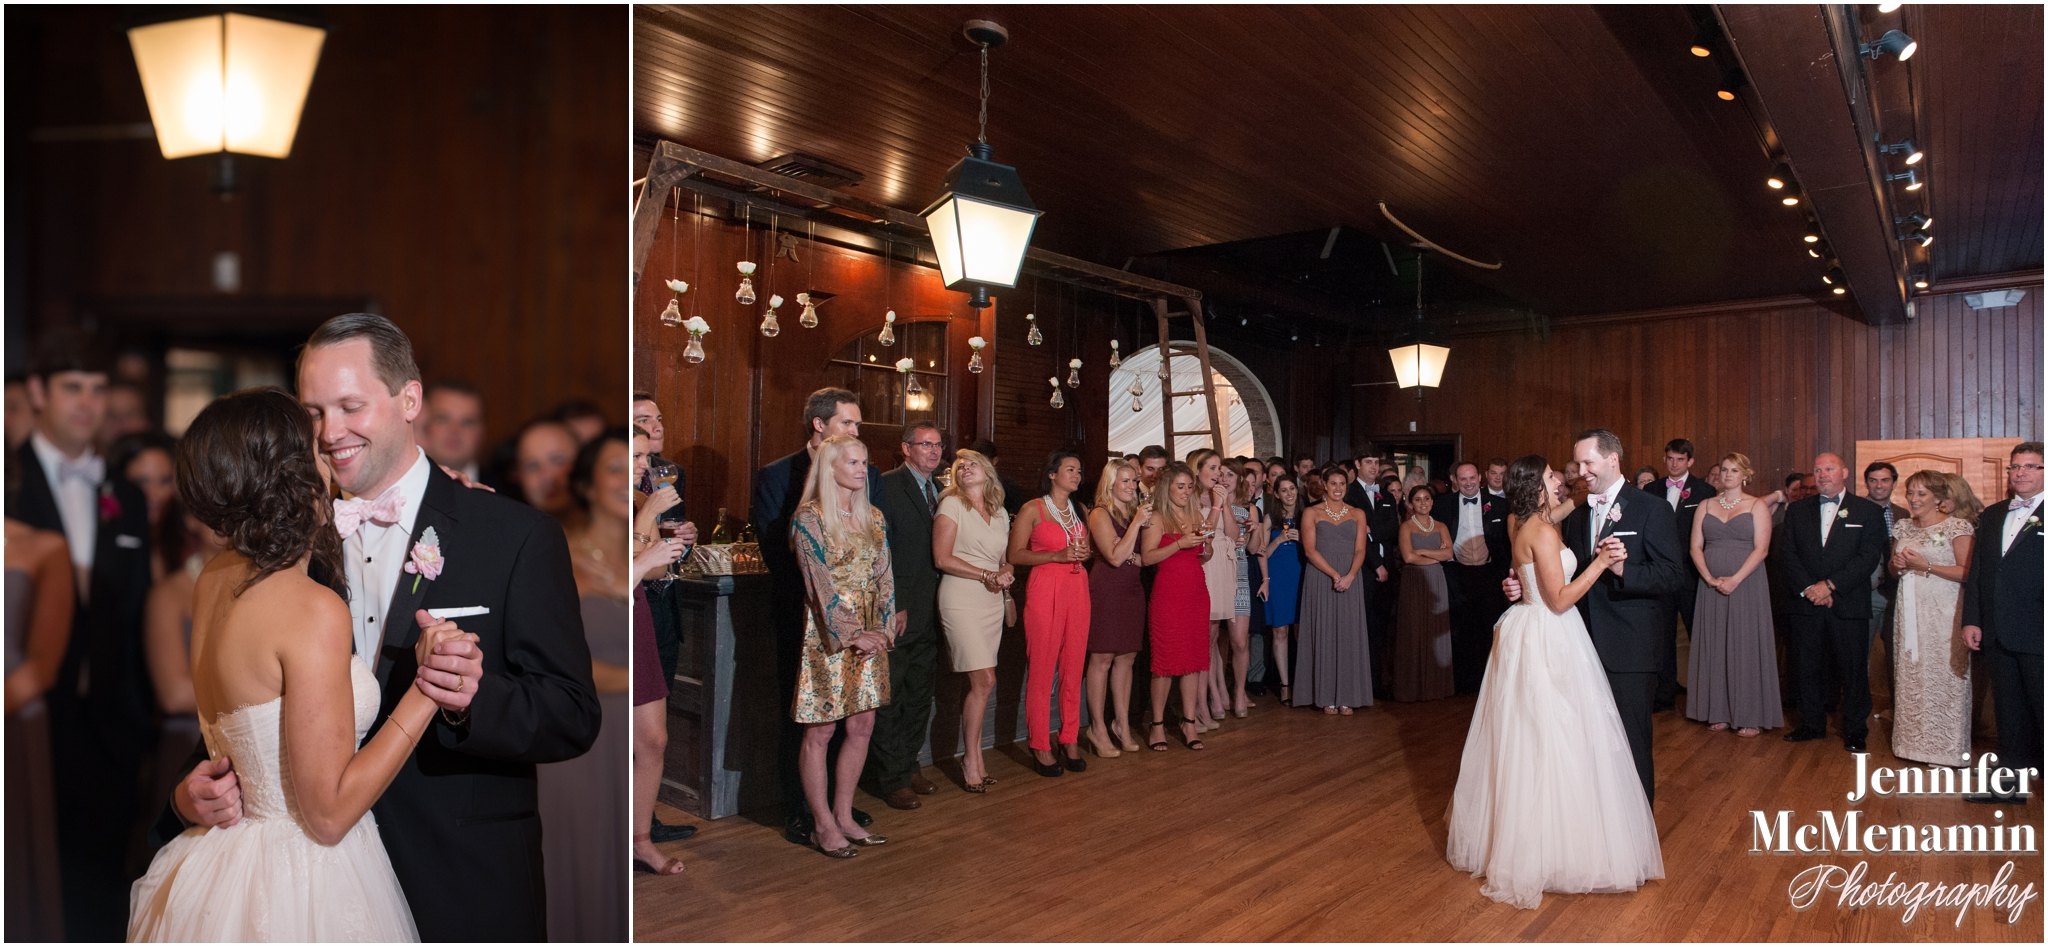 0114-BlumWilliams_03943-0816_JenniferMcMenaminPhotography_Evergreen-Museum-Carriage-House_Baltimore-wedding-photography_Baltimore-wedding-photographer